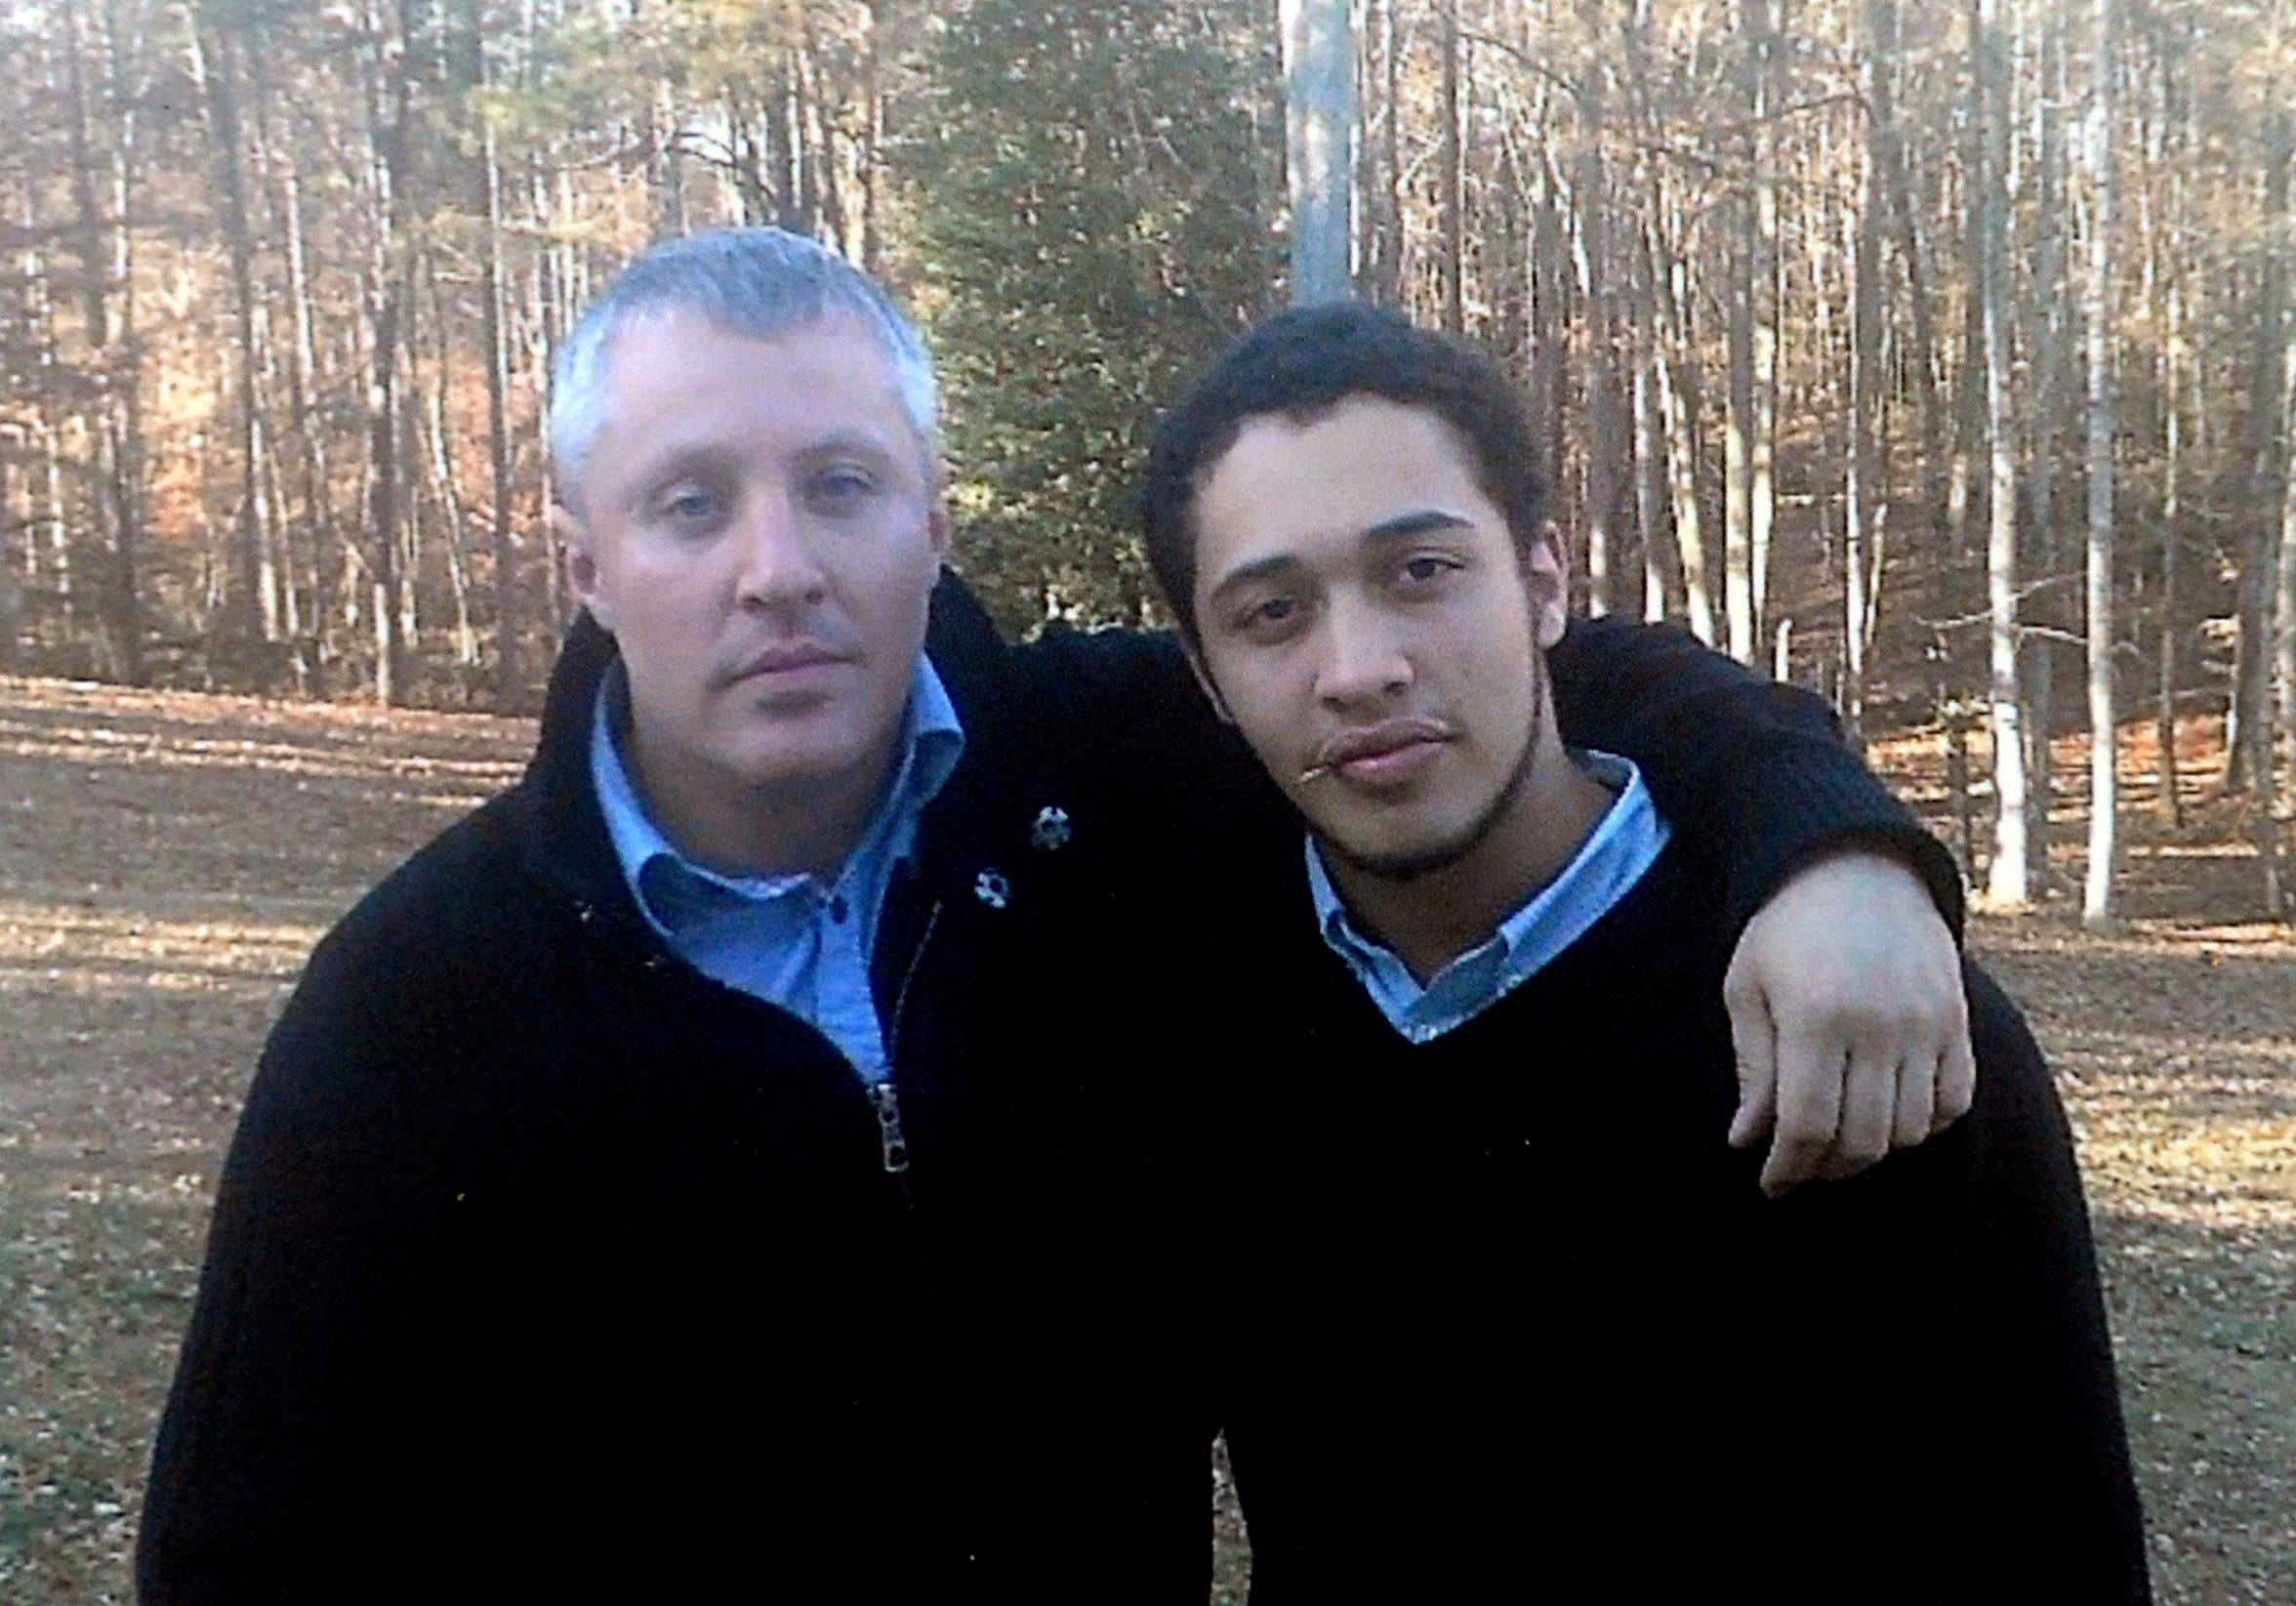 Josh Holton, right, poses with his biological father, Doug Brown, in an undated family photo. Brown drowned in 2015, then Holton died of a drug overdose the next year.